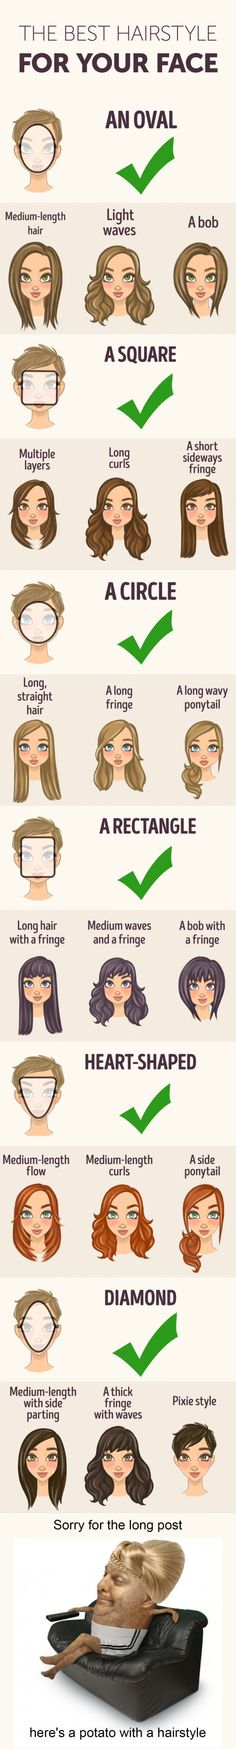 Comments comments Related posts: 14 Stunning DIY Hairstyles For Long Hair | Hairstyle Tutorials 20 Easy Hairstyle Tutorials for Your Everyday Look